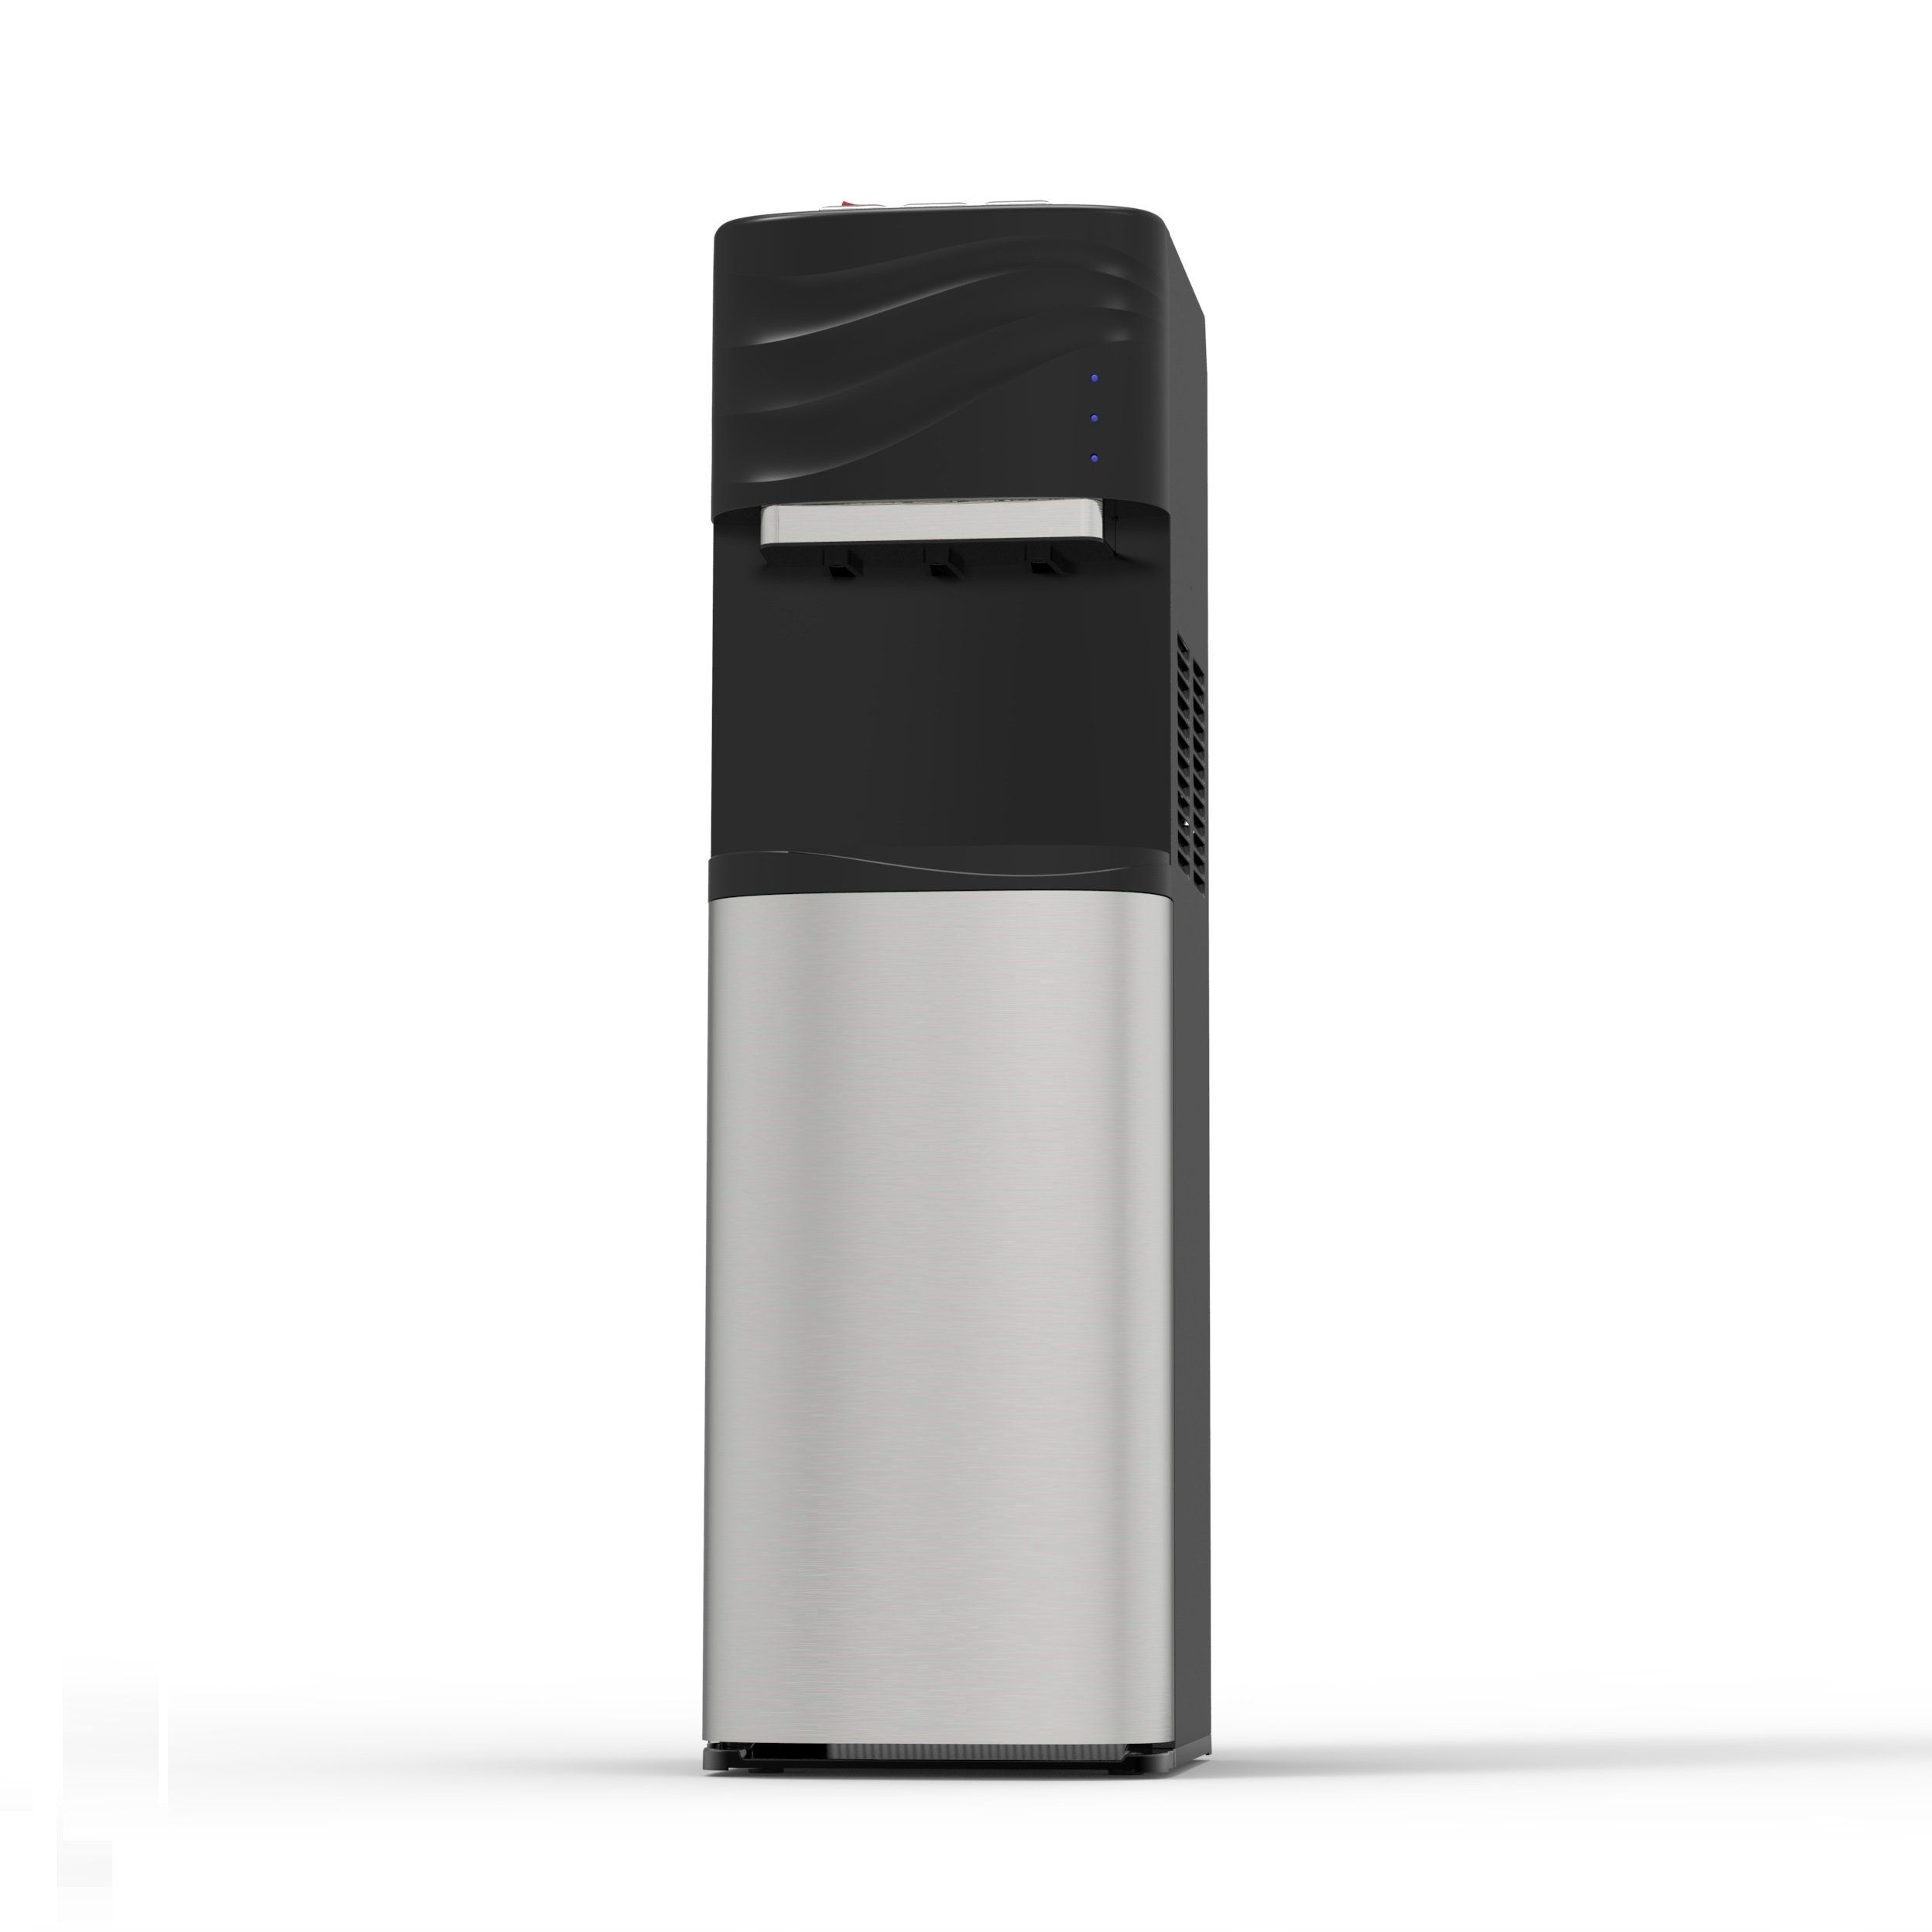 Drinkpod usa series bottle less water cooler with filters and